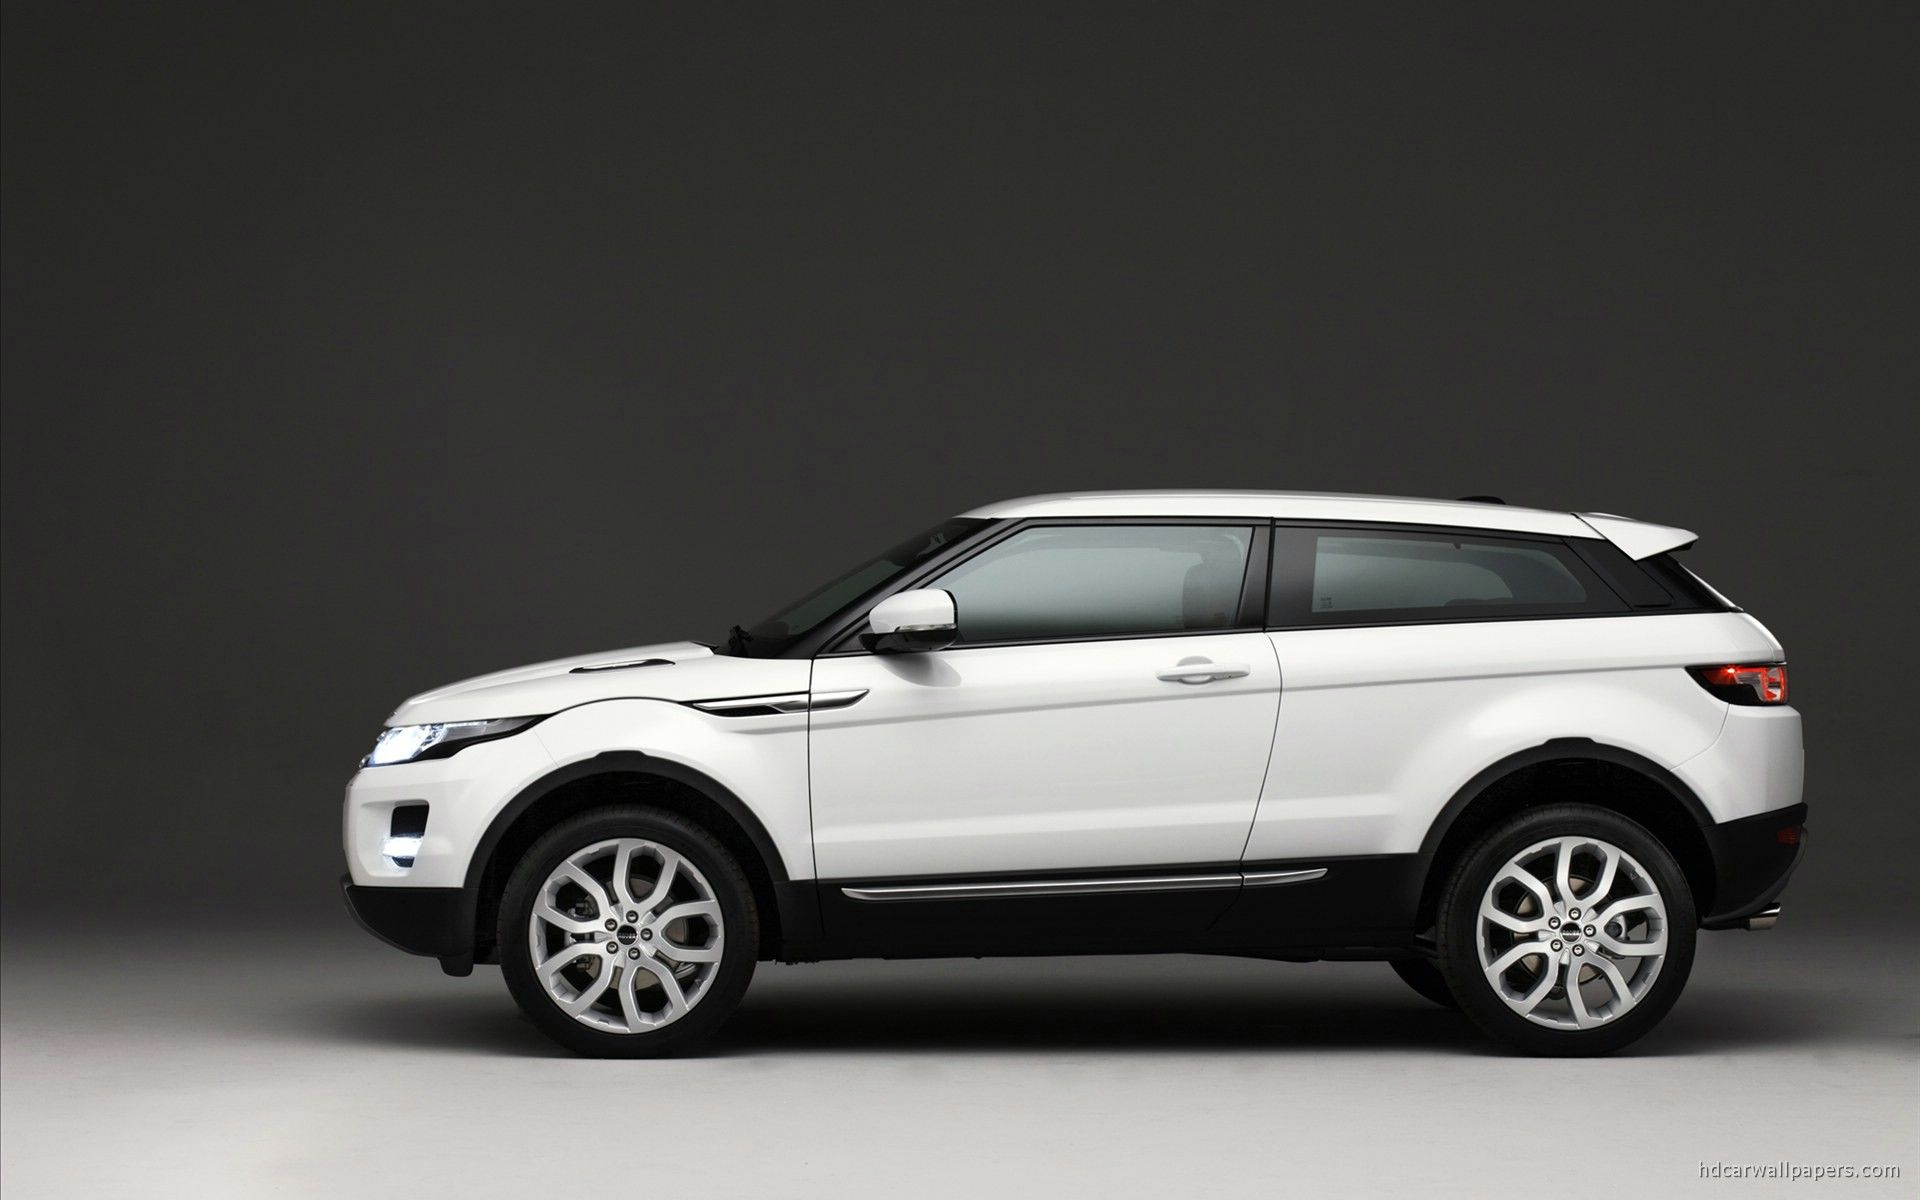 Range Rover Evoque Wallpaper Hd Car Wallpapers Wallpapers For